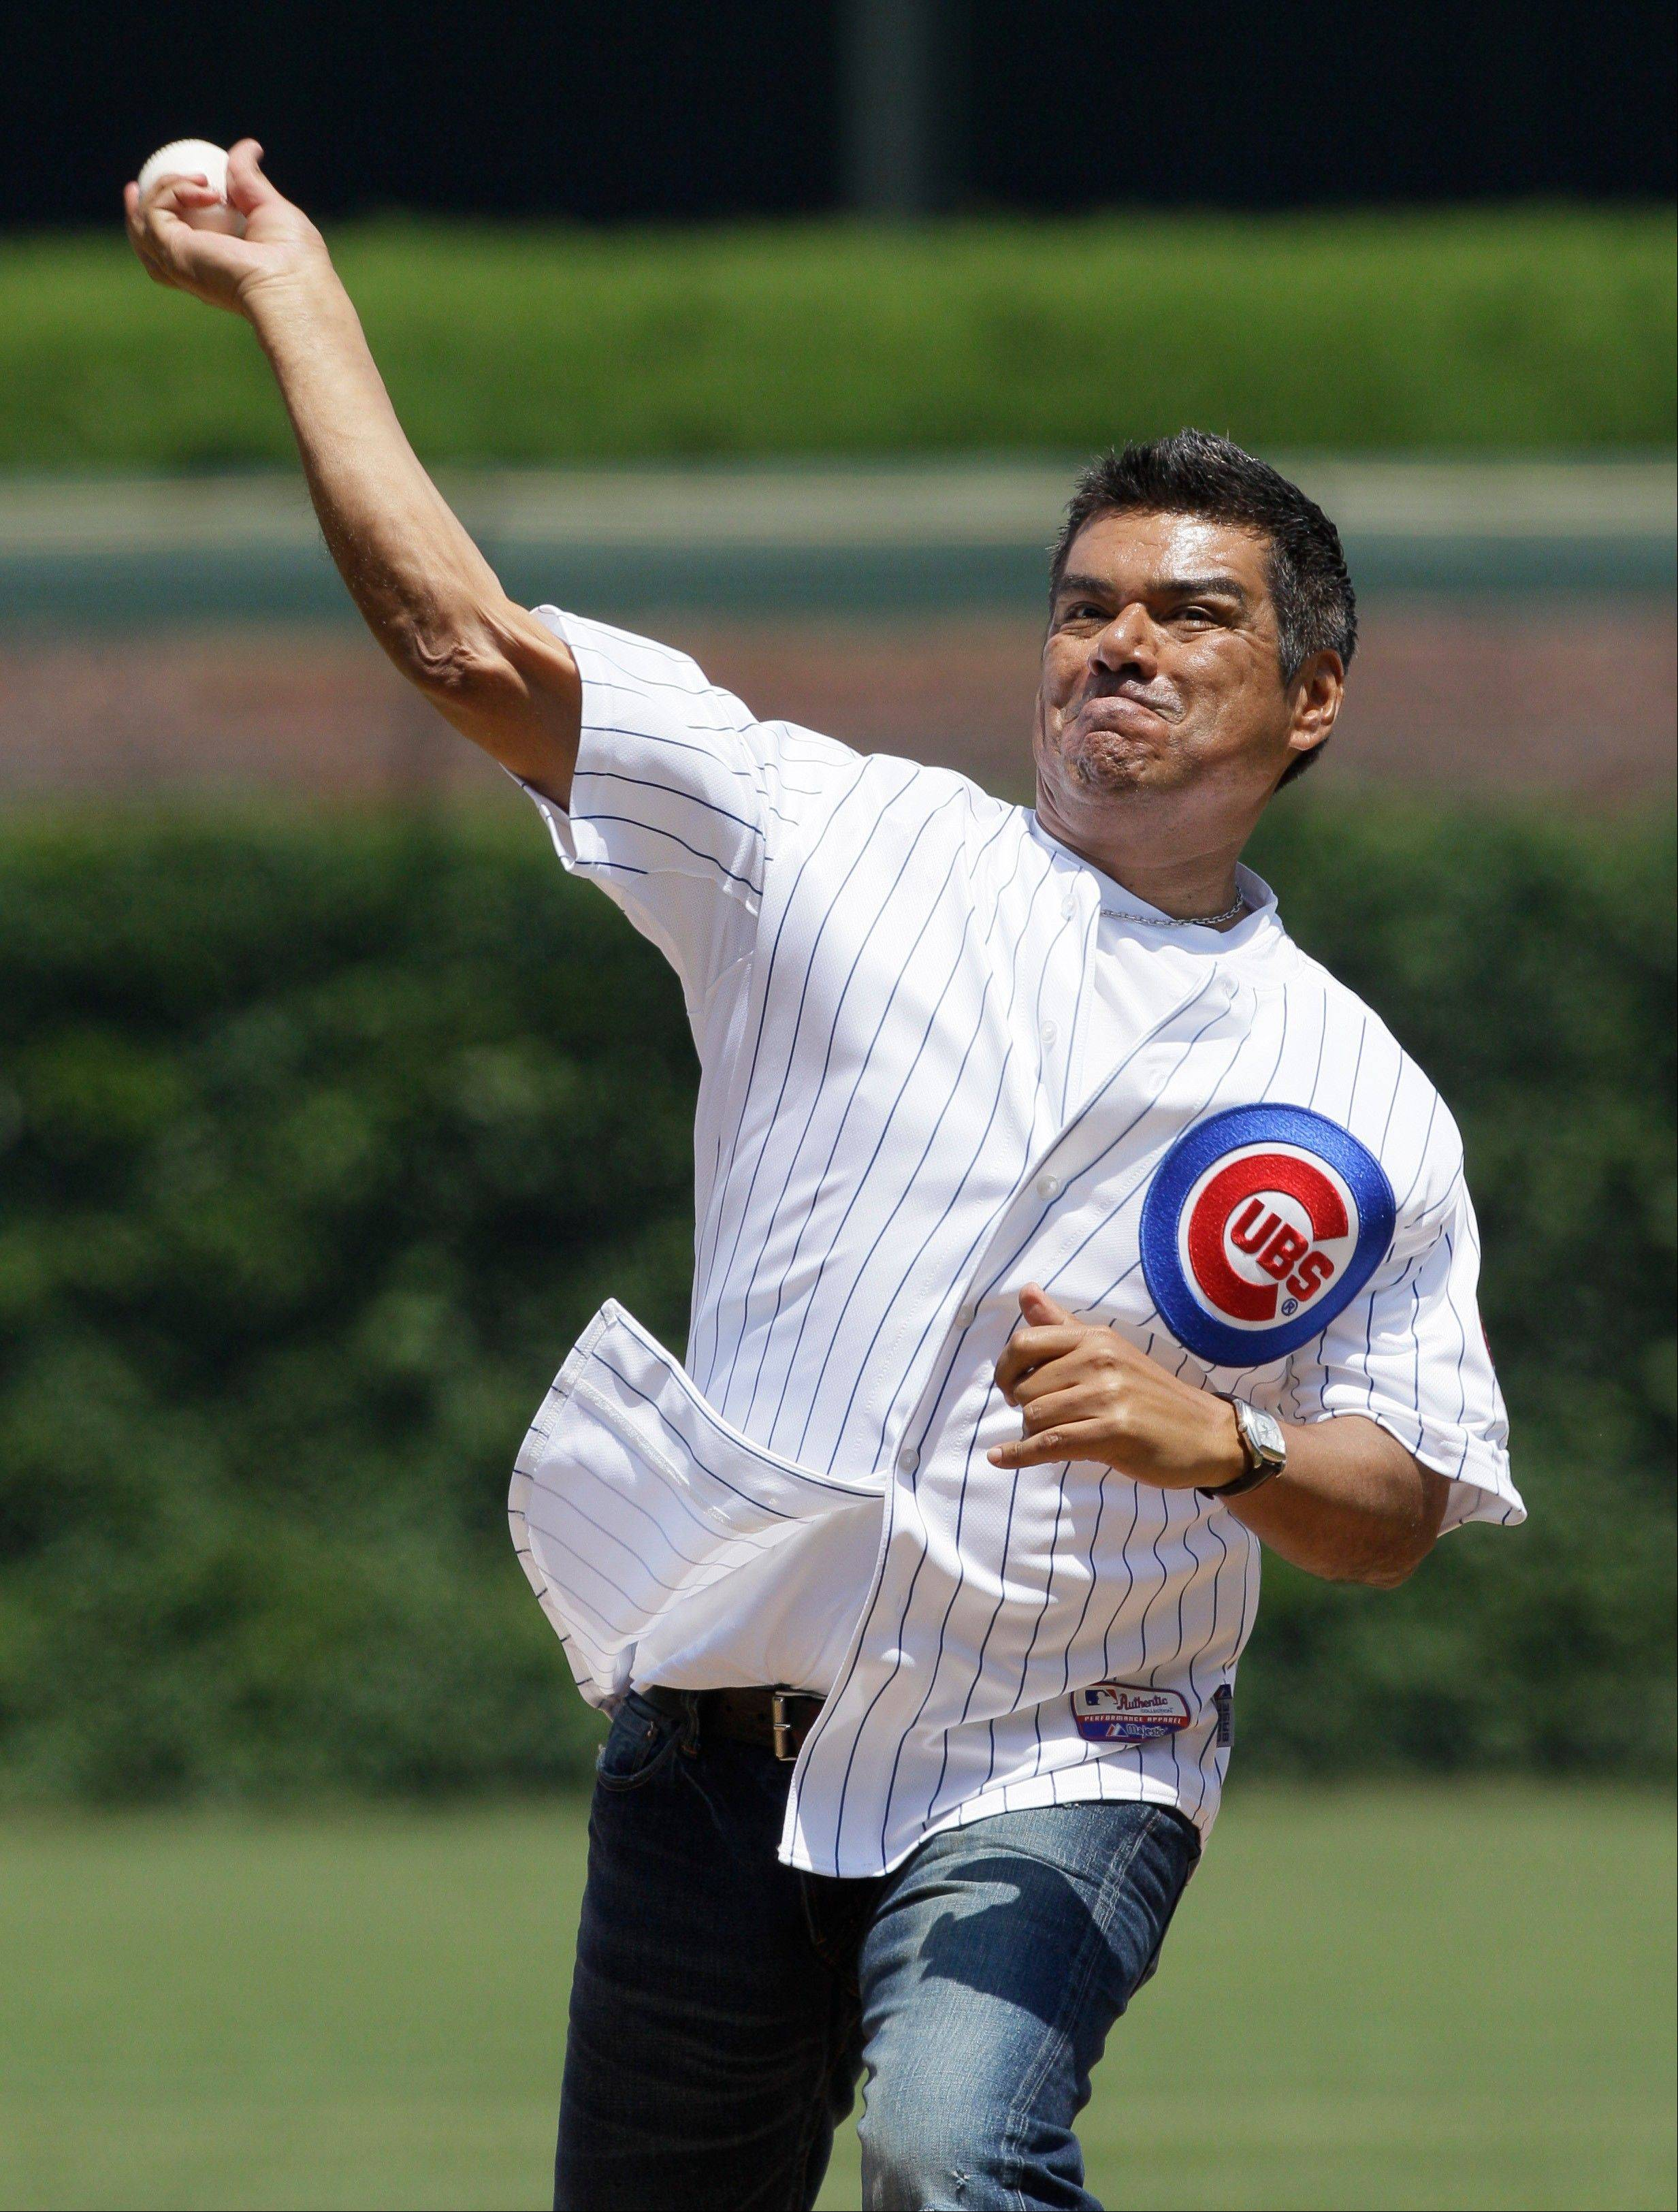 Actor George Lopez throws out the ceremonial first pitch before an interleague baseball game between the New York Yankees and the Chicago Cubs in Chicago, Friday, June 17, 2011.